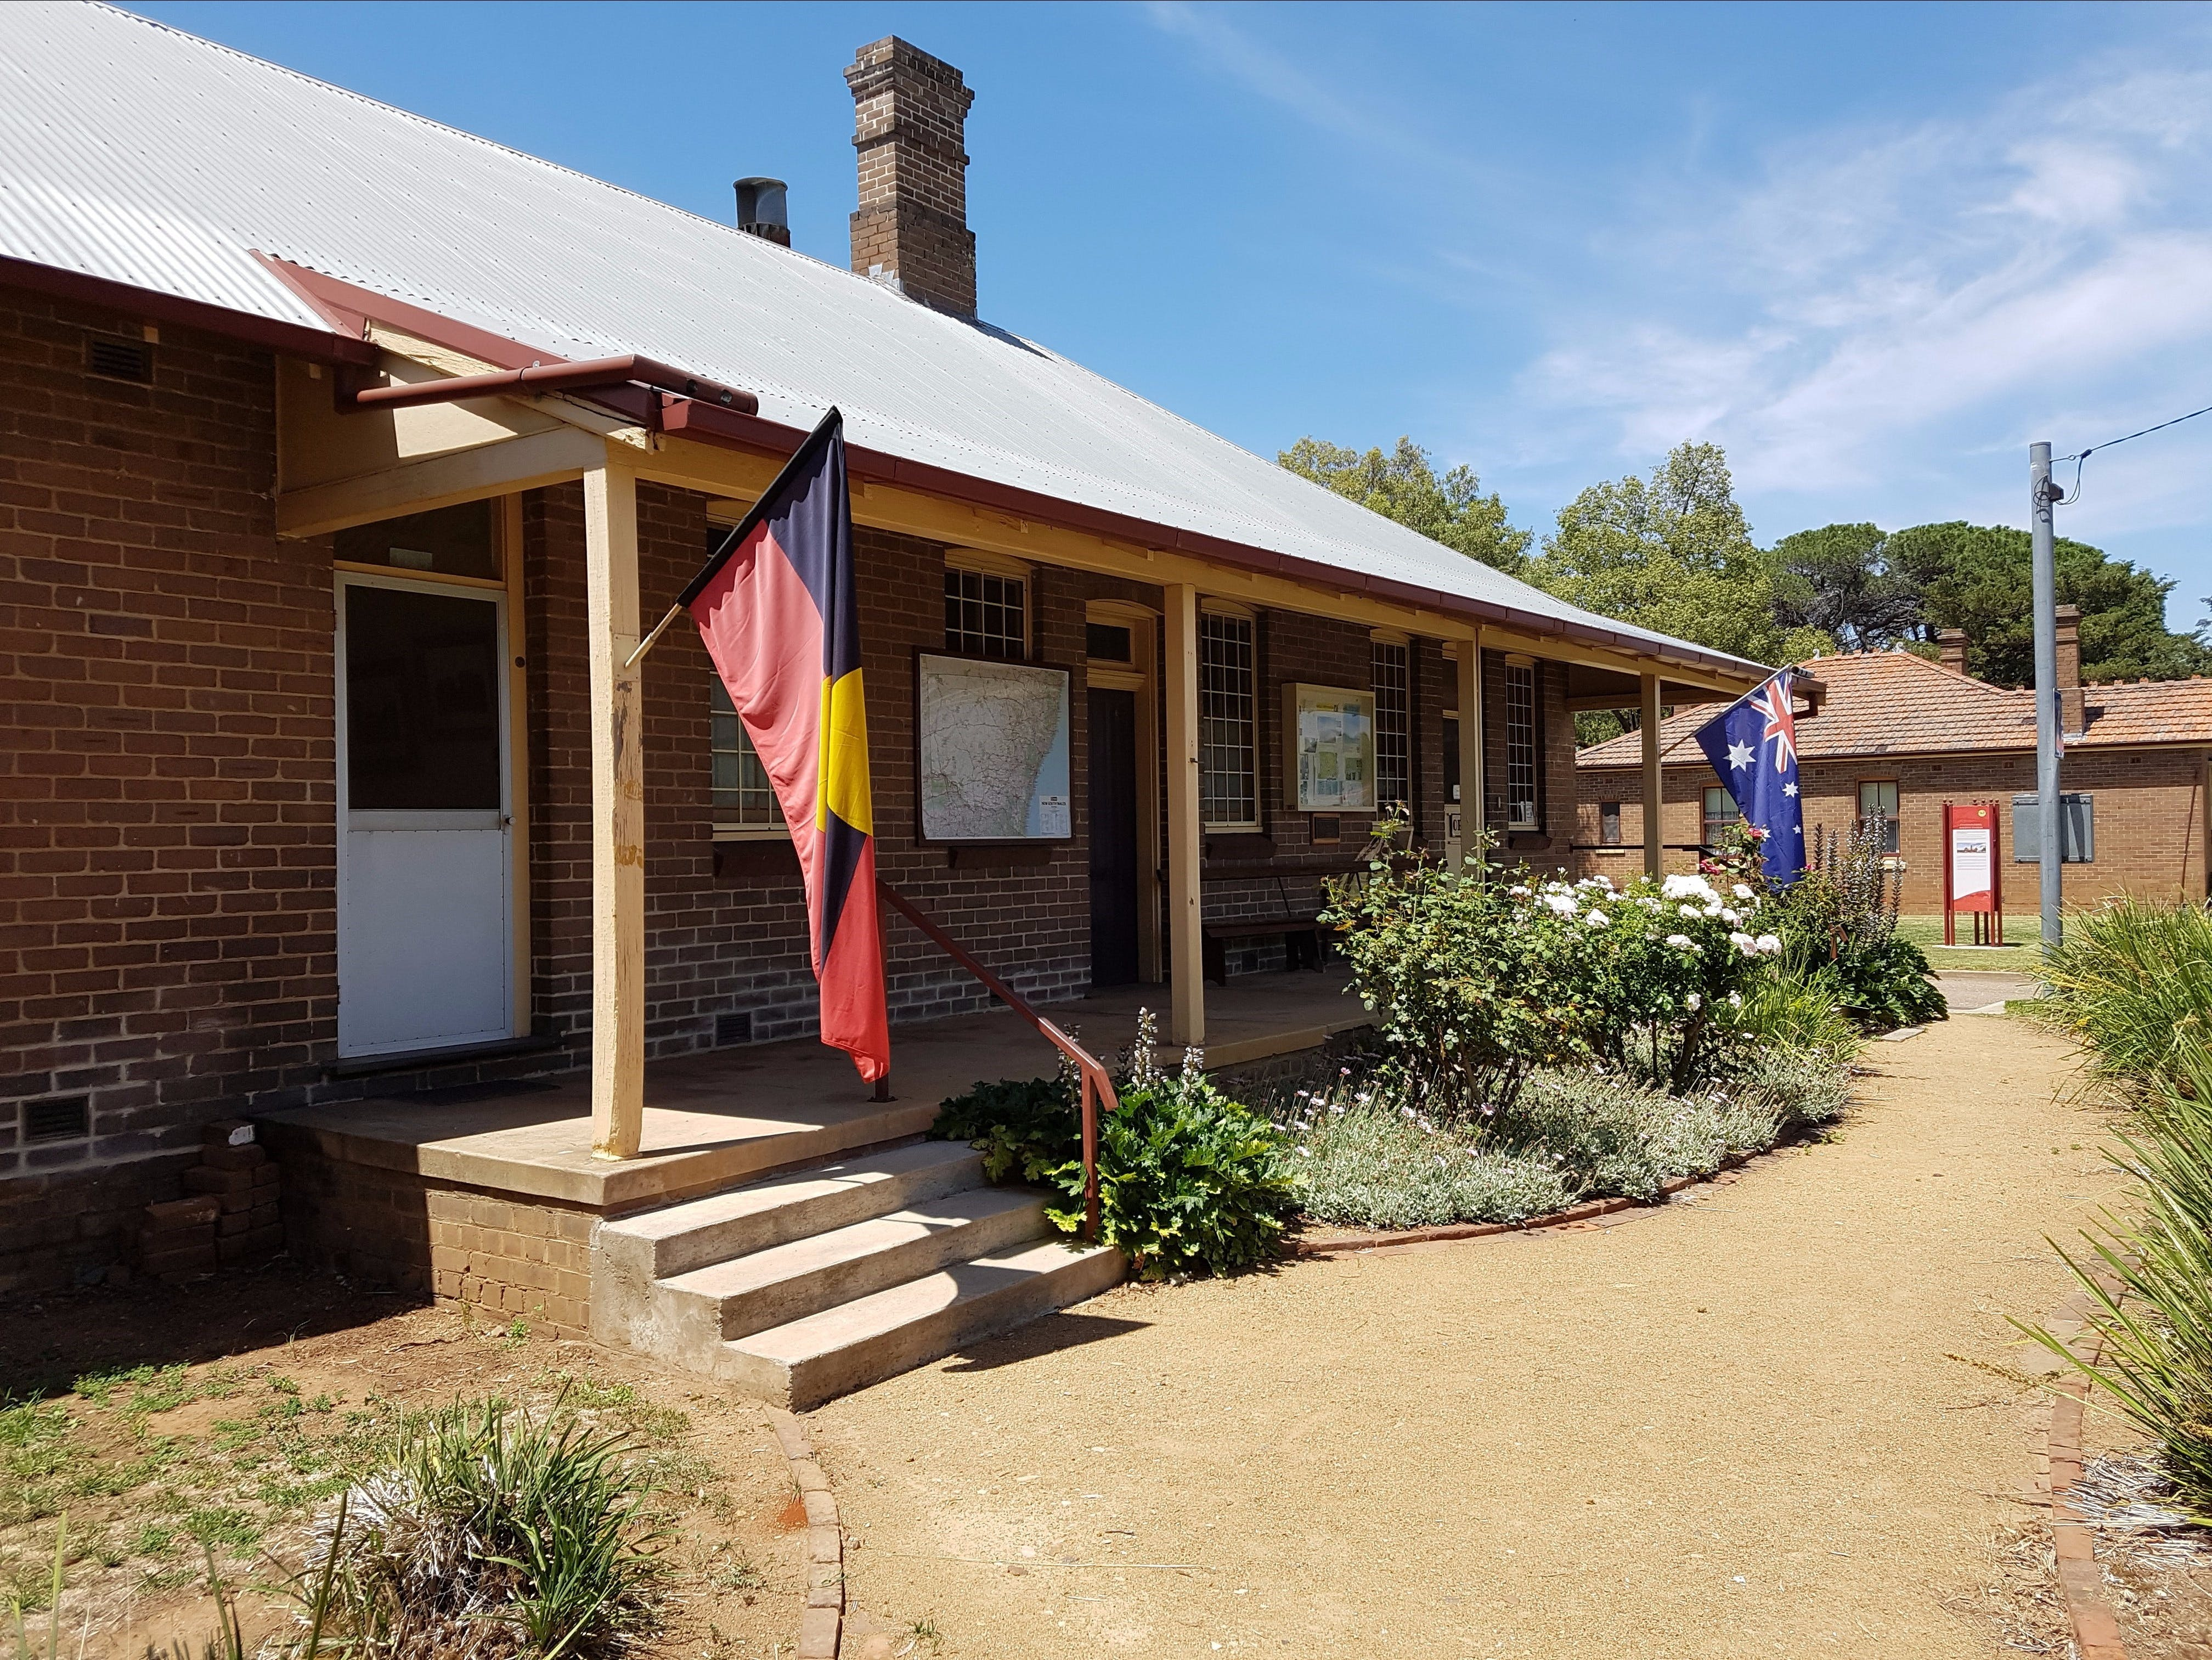 Cootamundra Visitor Information Centre and Heritage Centre - Geraldton Accommodation